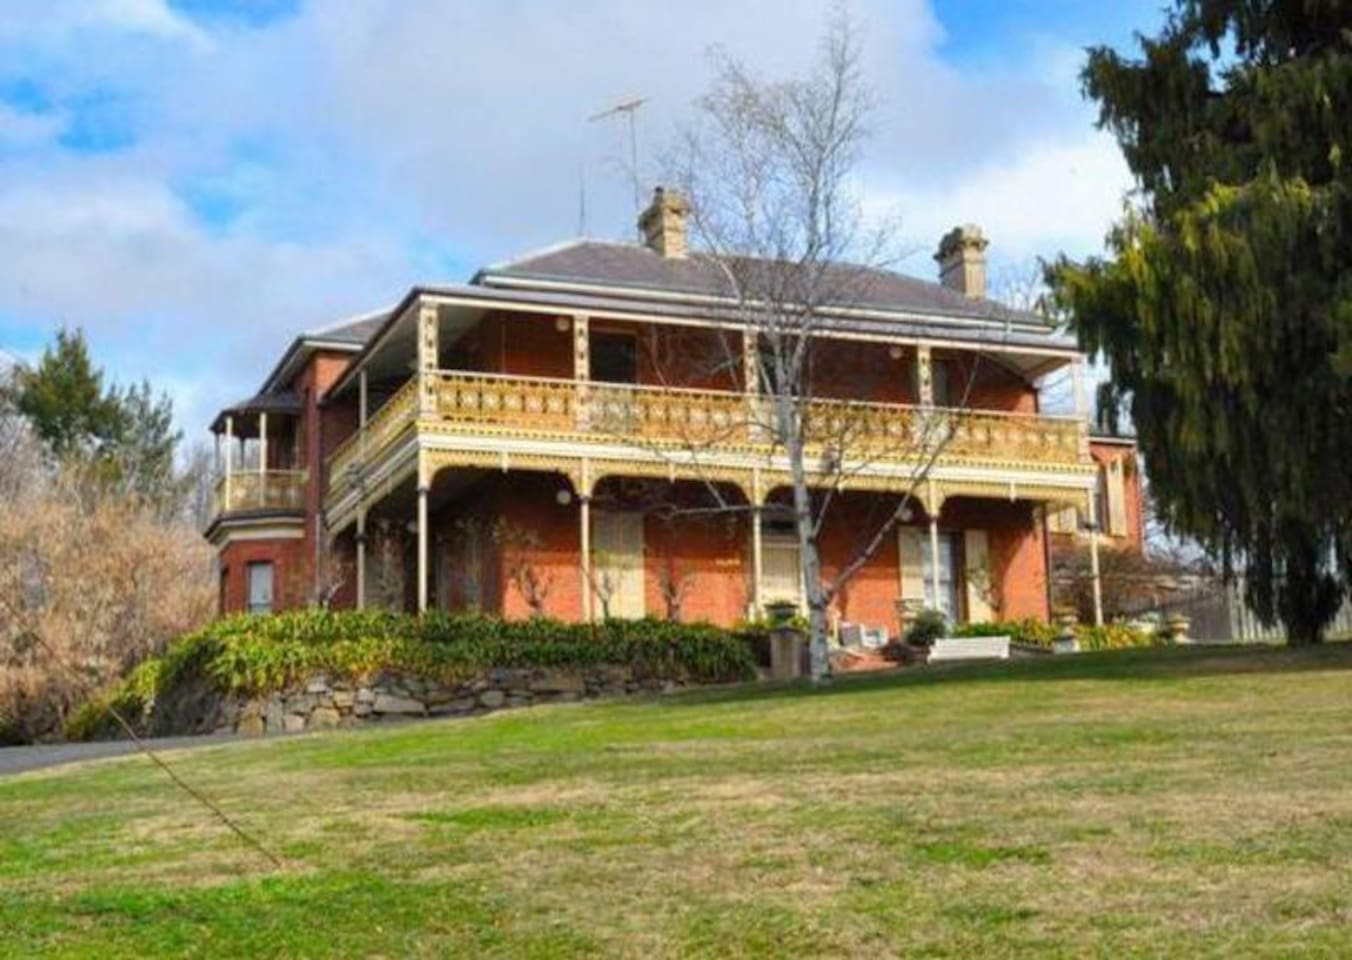 Delawarr - Proudly overlooking Bathurst for over 140 years